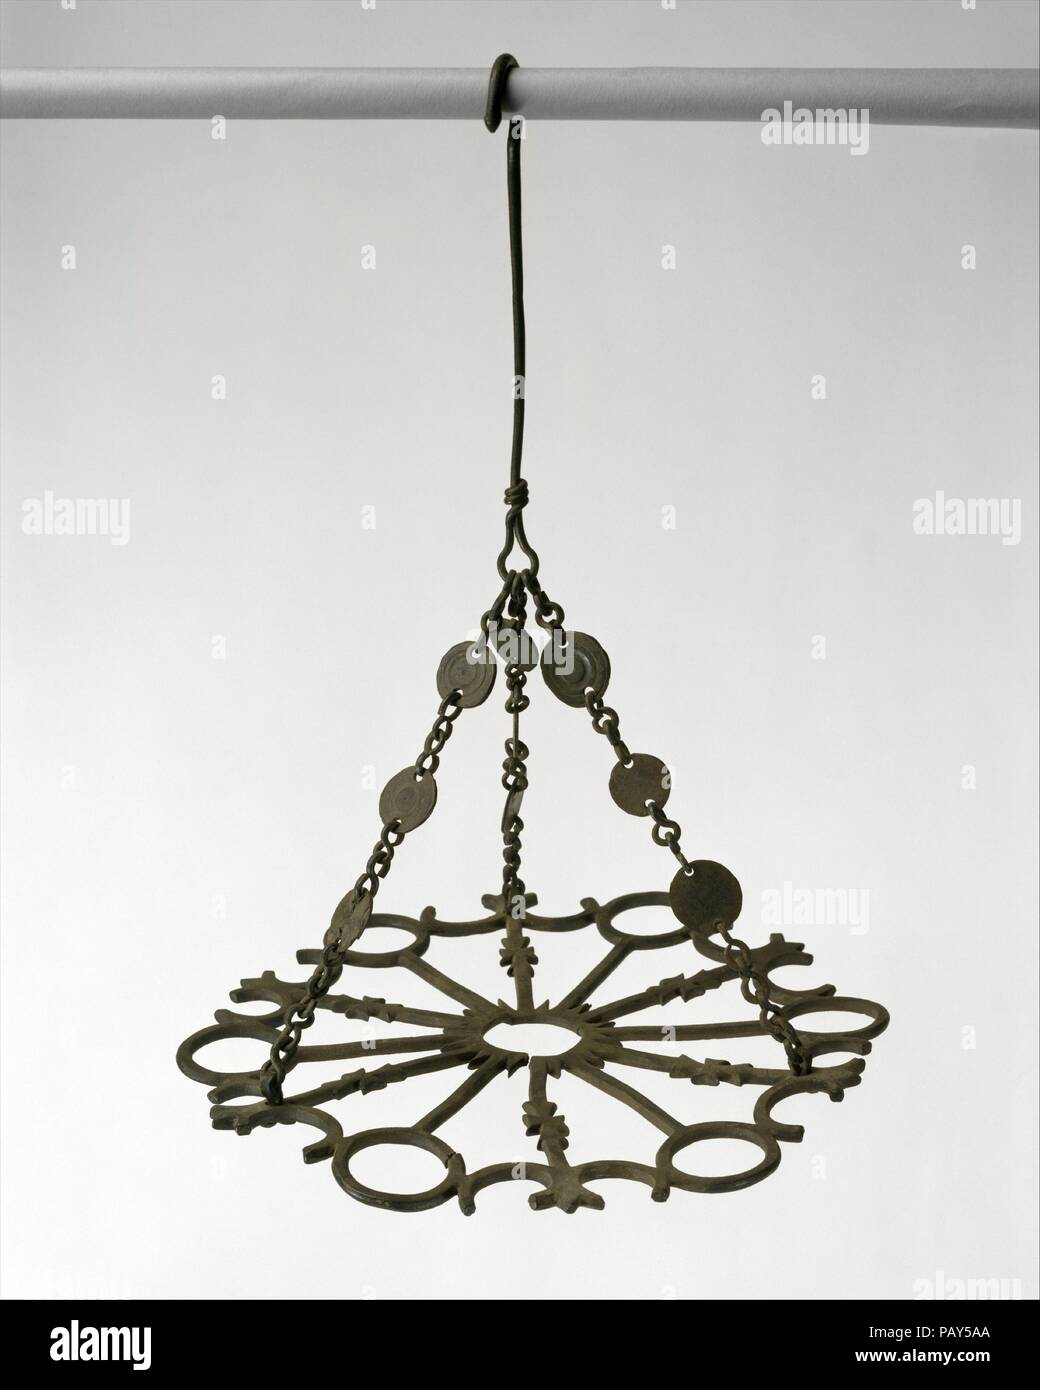 Polycandelon with Crosses. Culture: Byzantine. Dimensions: Ht. with chain 14 in. (35.5cm)  Diam. of plate: 10 7/16 (26.5cm). Date: 500-700.  Round flat hanging lamps, or polycandela, were lit by oil-filled glass vessels hung from the round holes in their designs. Paul the Silentiary in 563 described the effect of huge hanging lamps that lit the great church of Hagia Sophia in Constantinople: 'Thus is everything clothed in beauty...no words are sufficient to describe the illumination in the evening: you might say that some nocturnal sun filled the majestic church with light.'. Museum: Metropoli - Stock Image